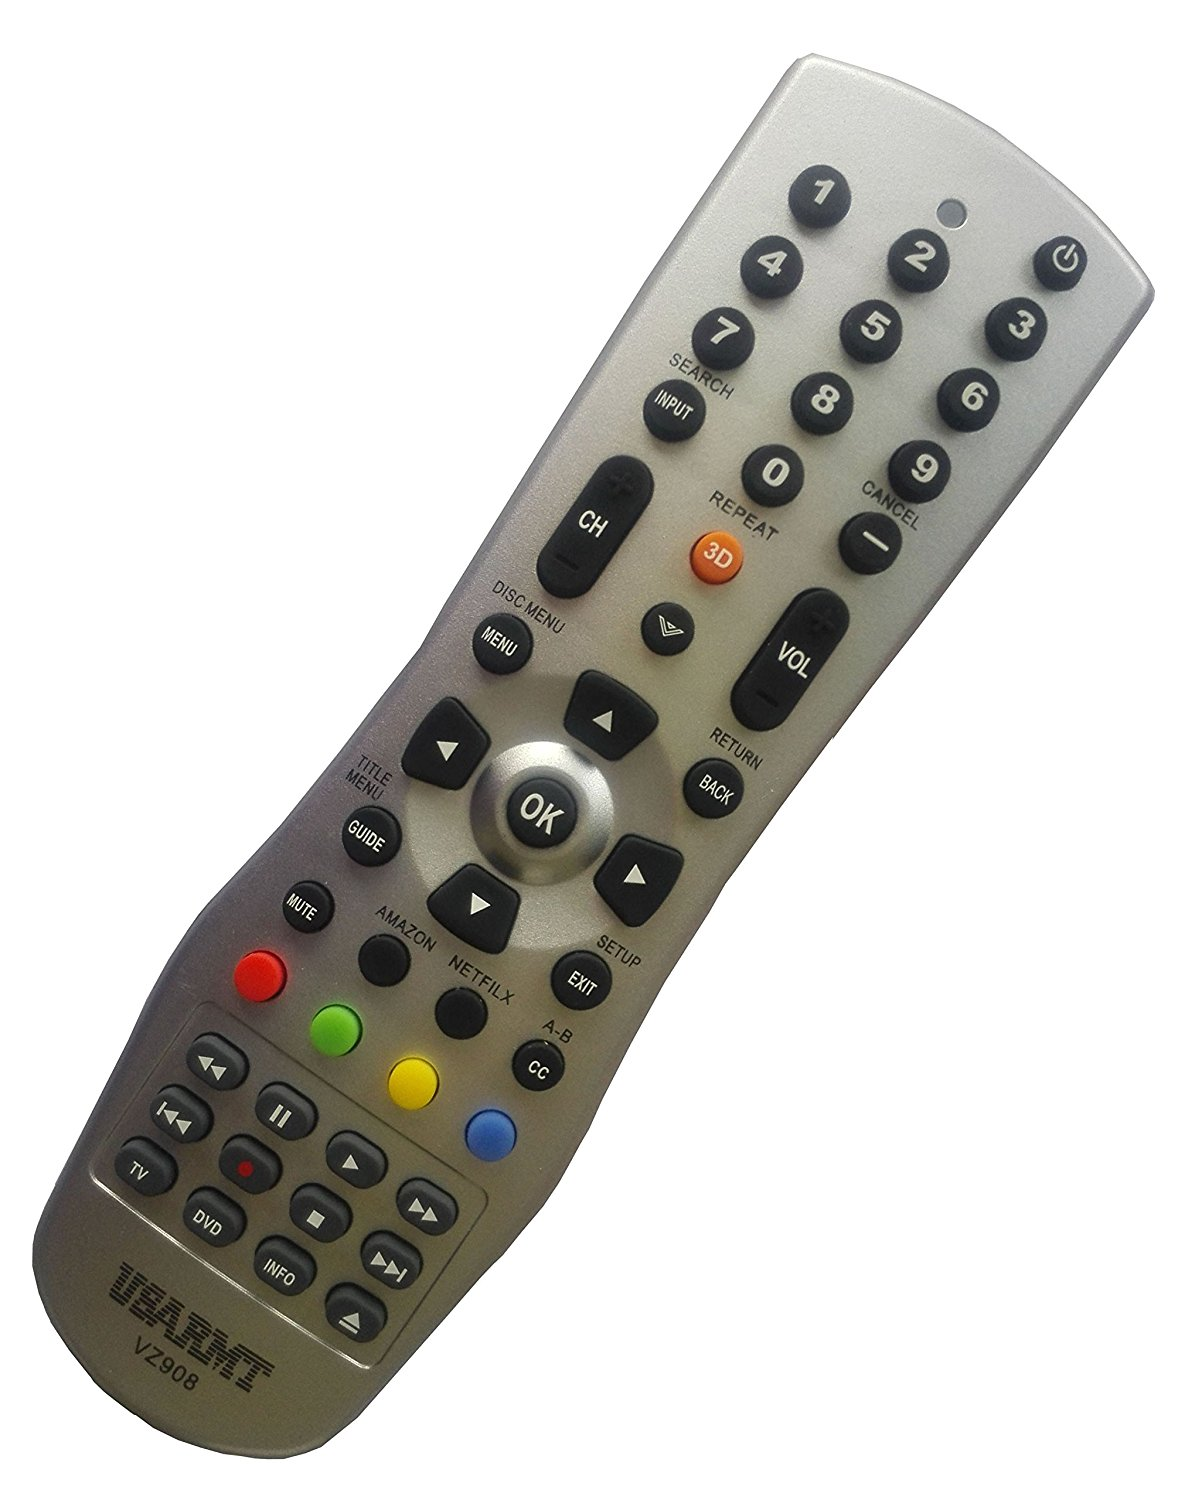 NEW Vizio Universal TV&DVD Blu-ray Player Remote Fit for 99% Vizio Plasma LCD LED 3D TV & DVD Blu-ray Player, replace VR1 VR2 VR3 VR4 VR15 VR17 XRT112 XRT510 XRB100. No need to set up, easy to USE!